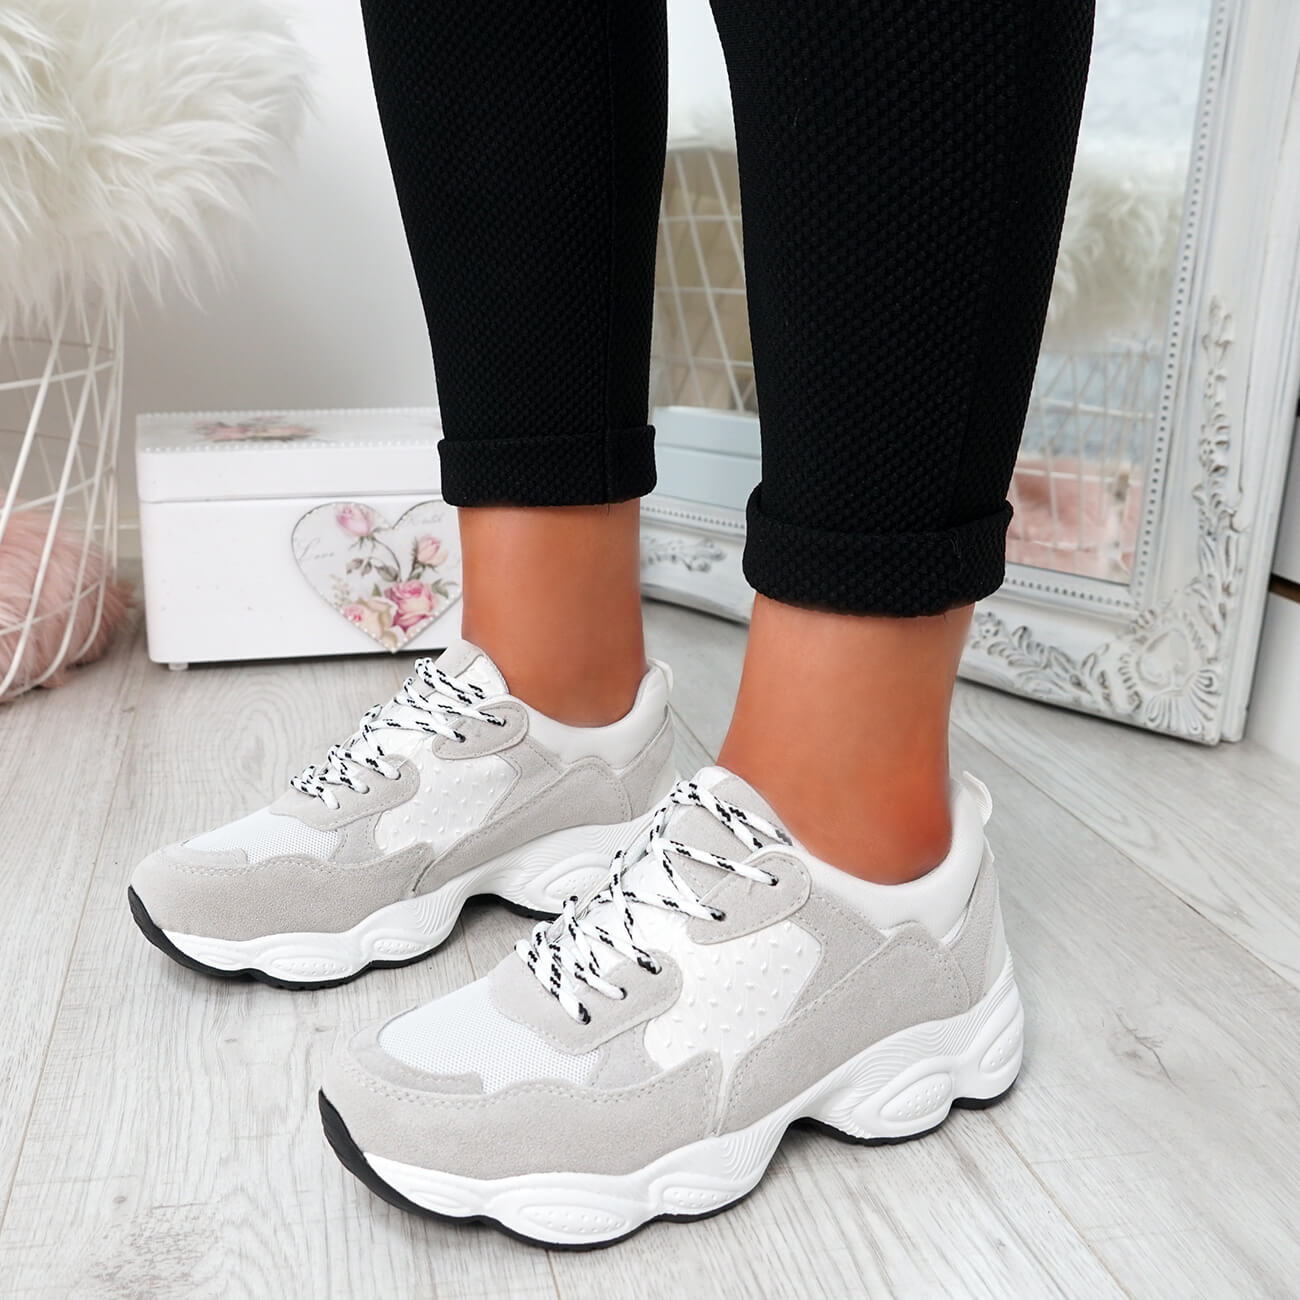 WOMENS-LADIES-RUNNING-GYM-CHUNKY-TRAINERS-SNEAKERS-SHOES-SIZE miniatura 9